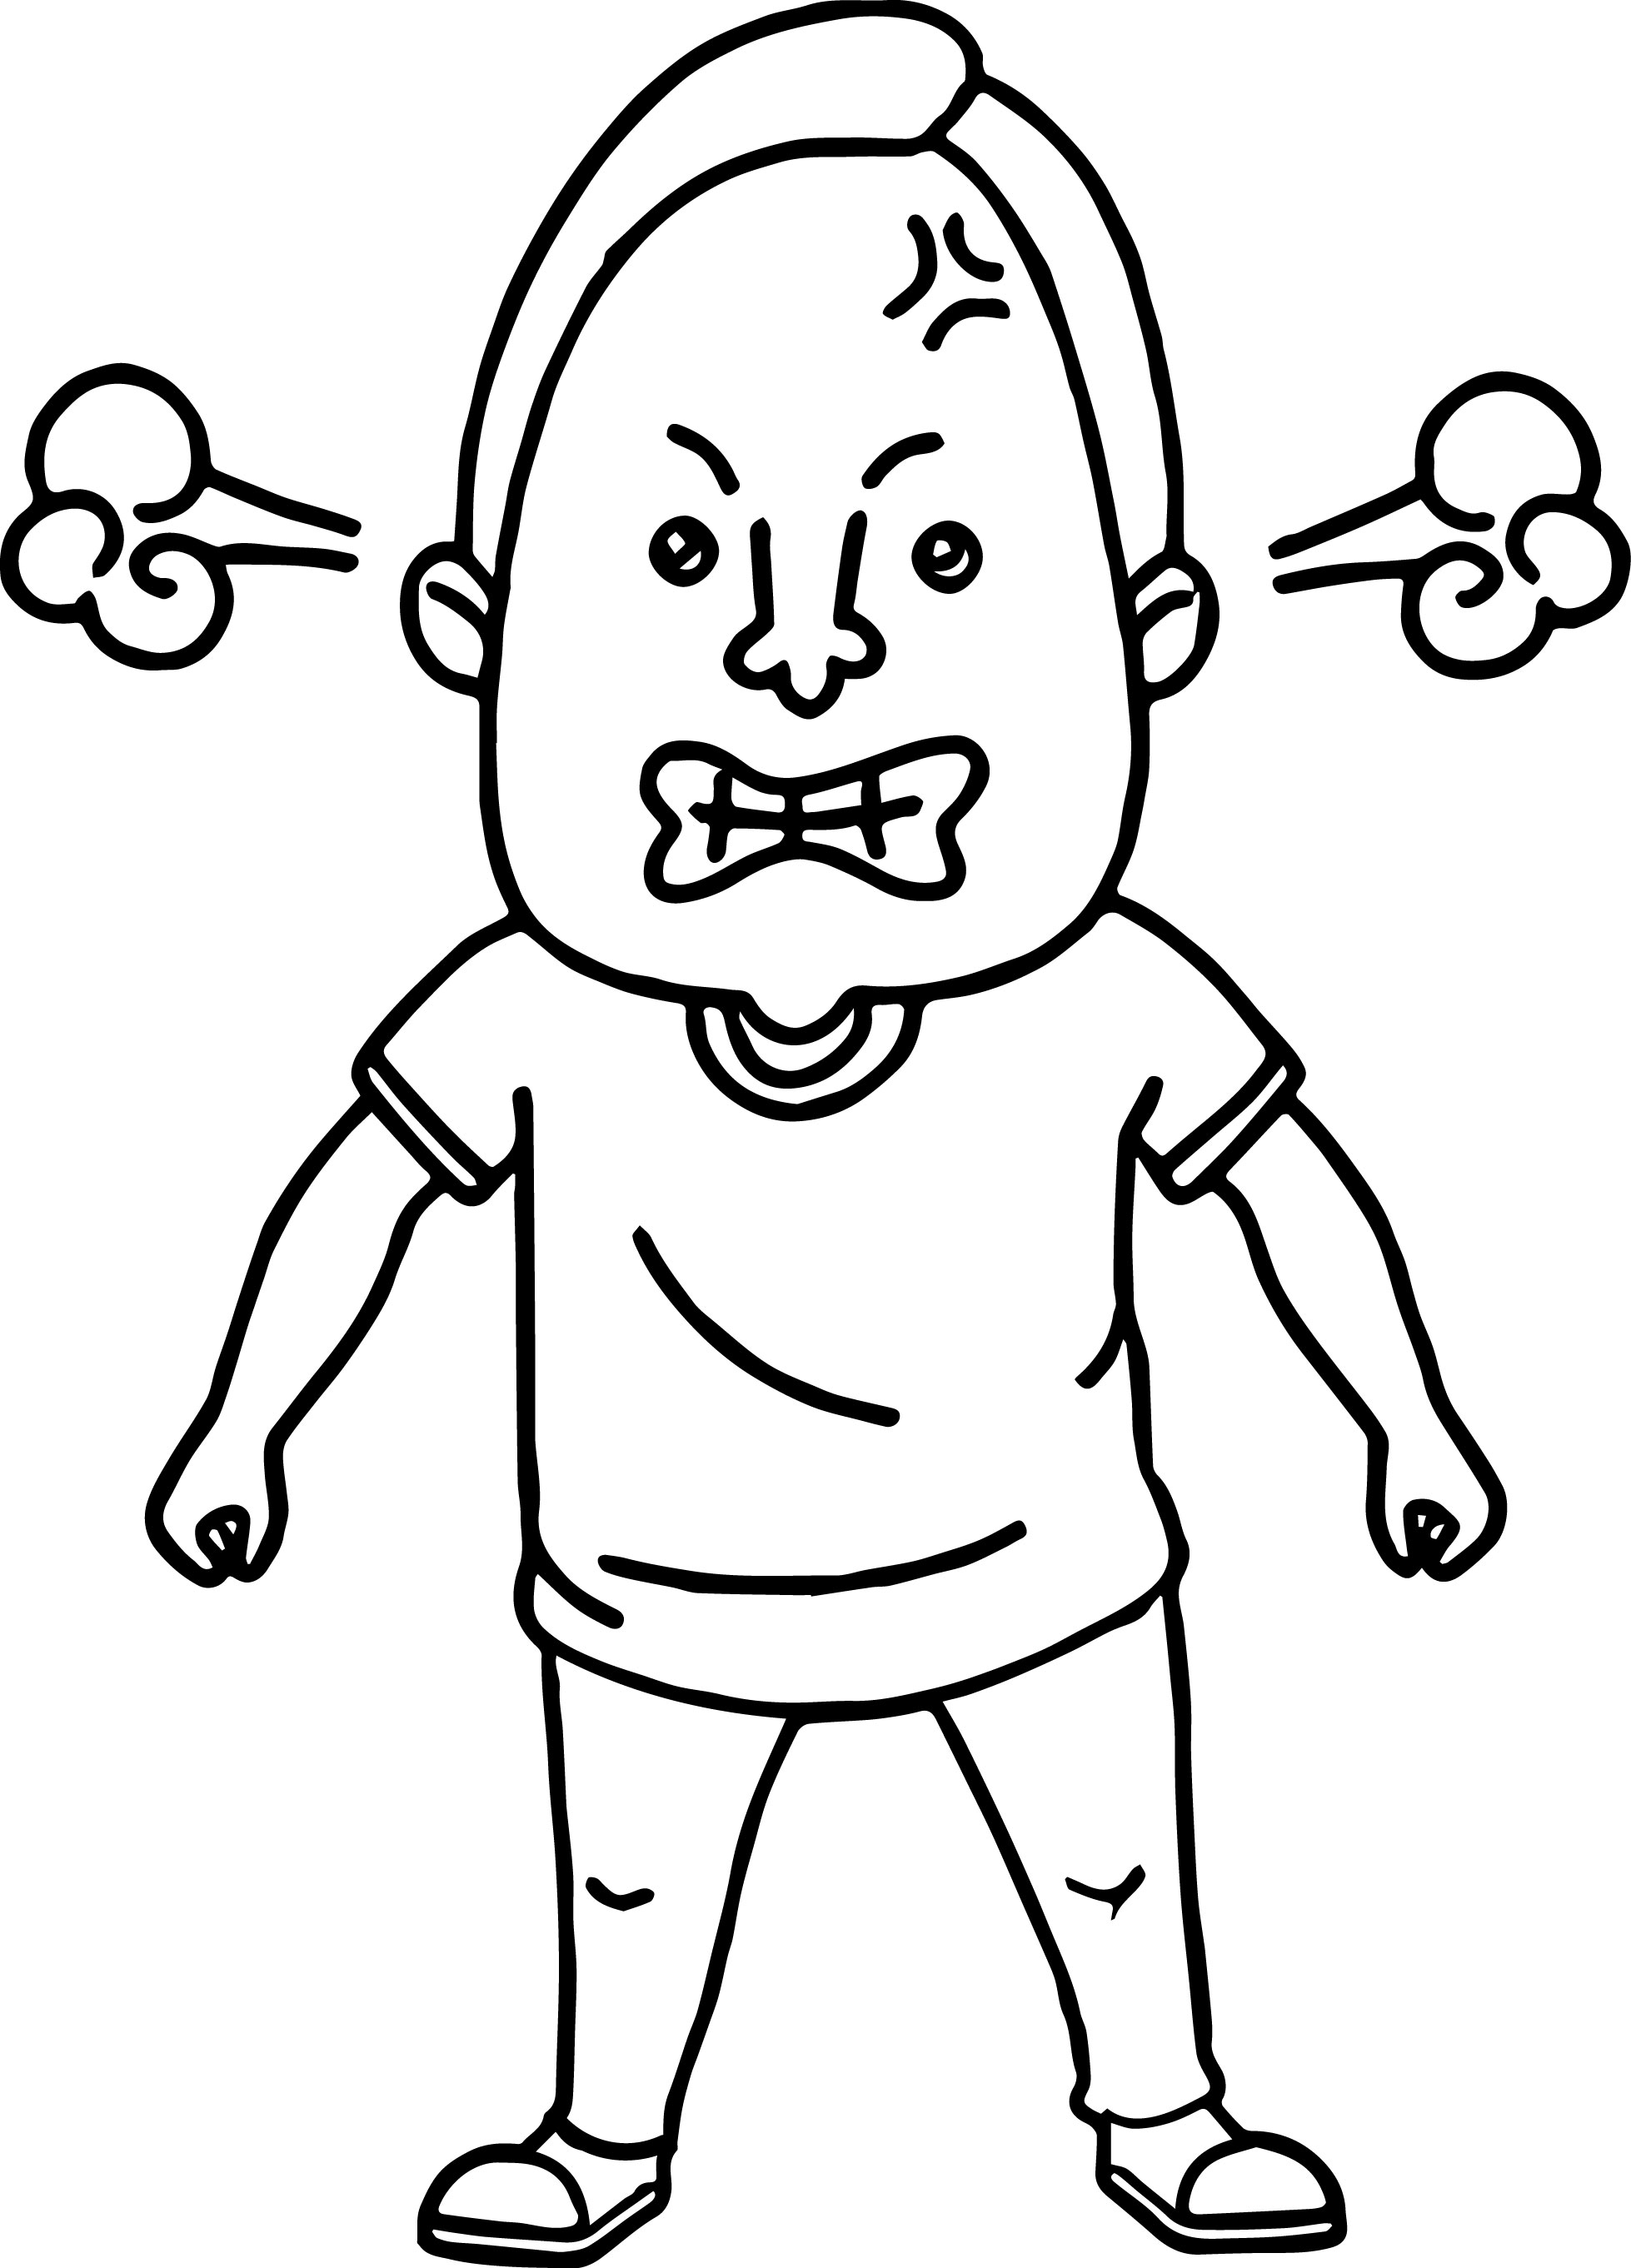 Man Angry Coloring Page